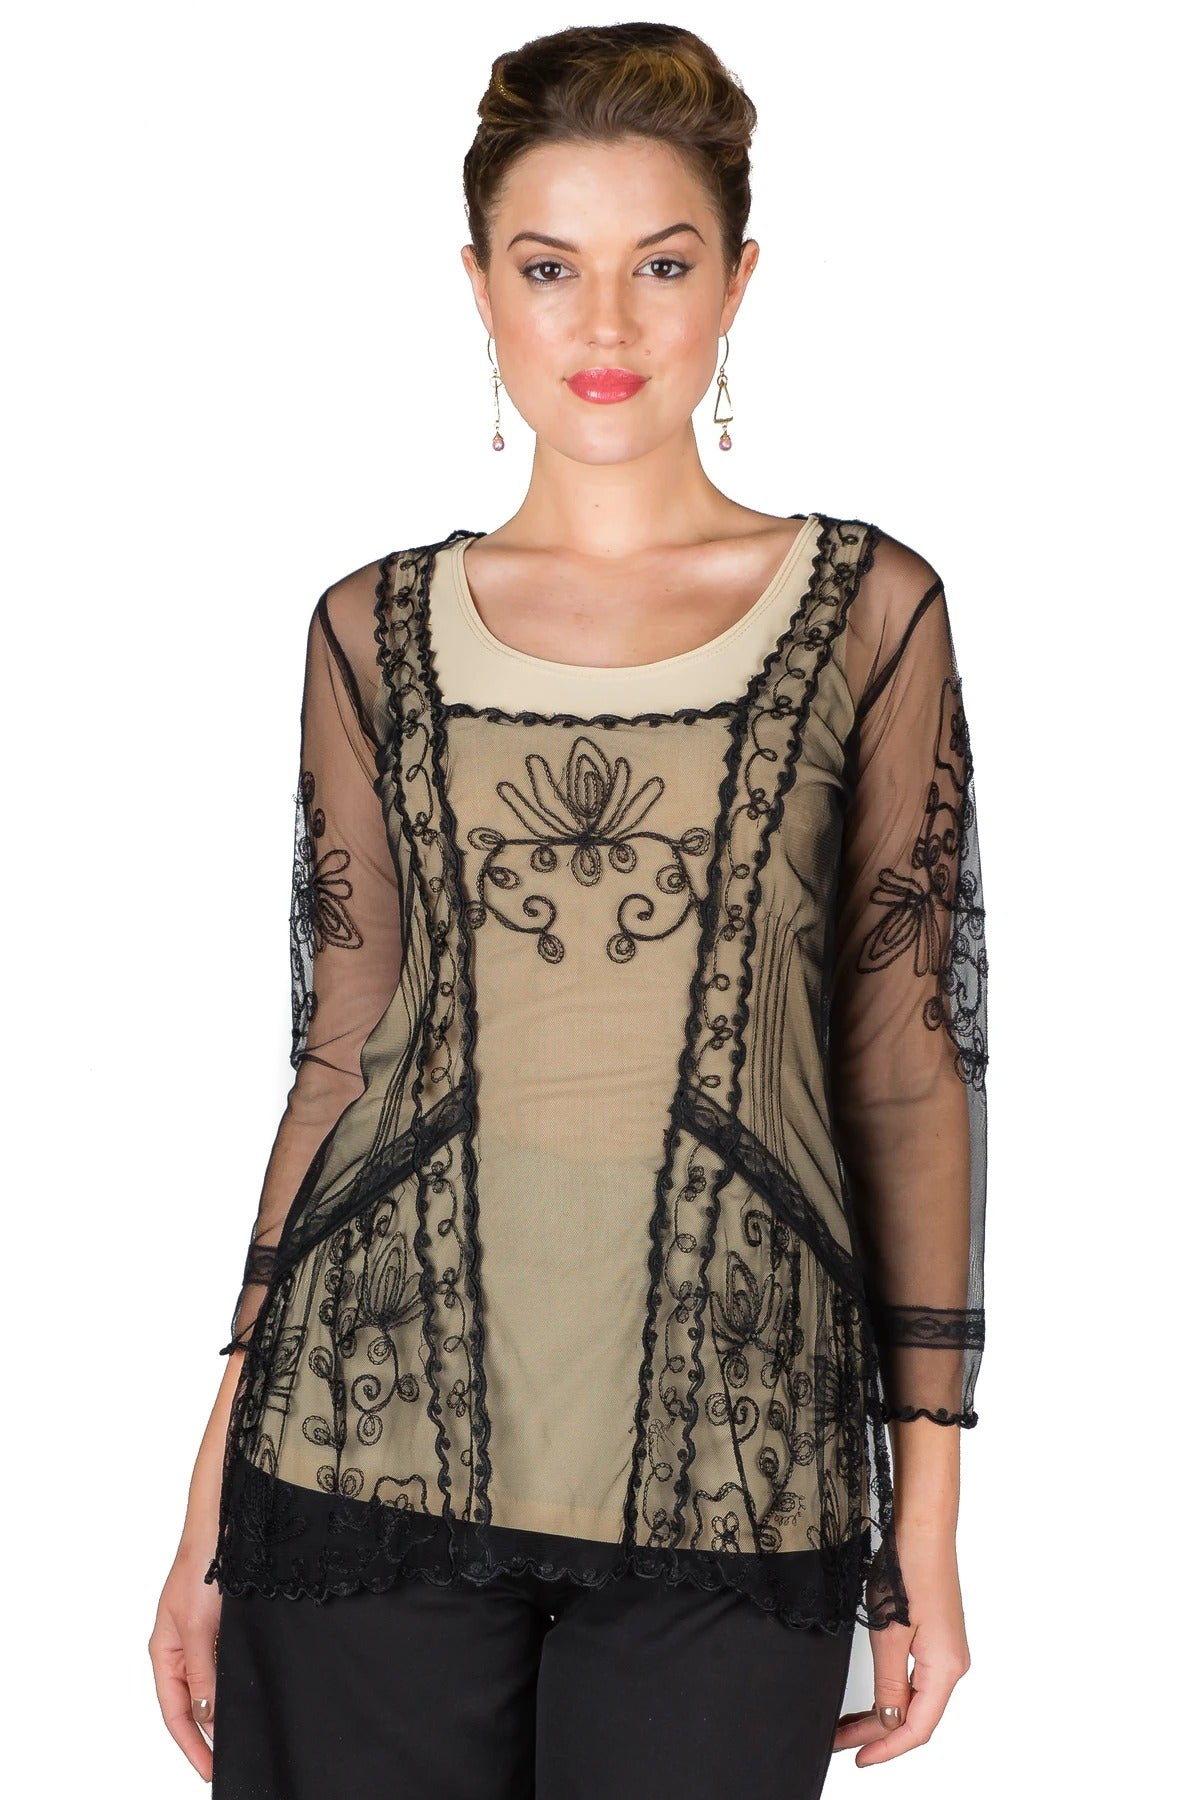 Edwardian Blouses |  Lace Blouses & Sweaters Vintage Inspired Art Nouveau Top in Black by Nataya $88.00 AT vintagedancer.com